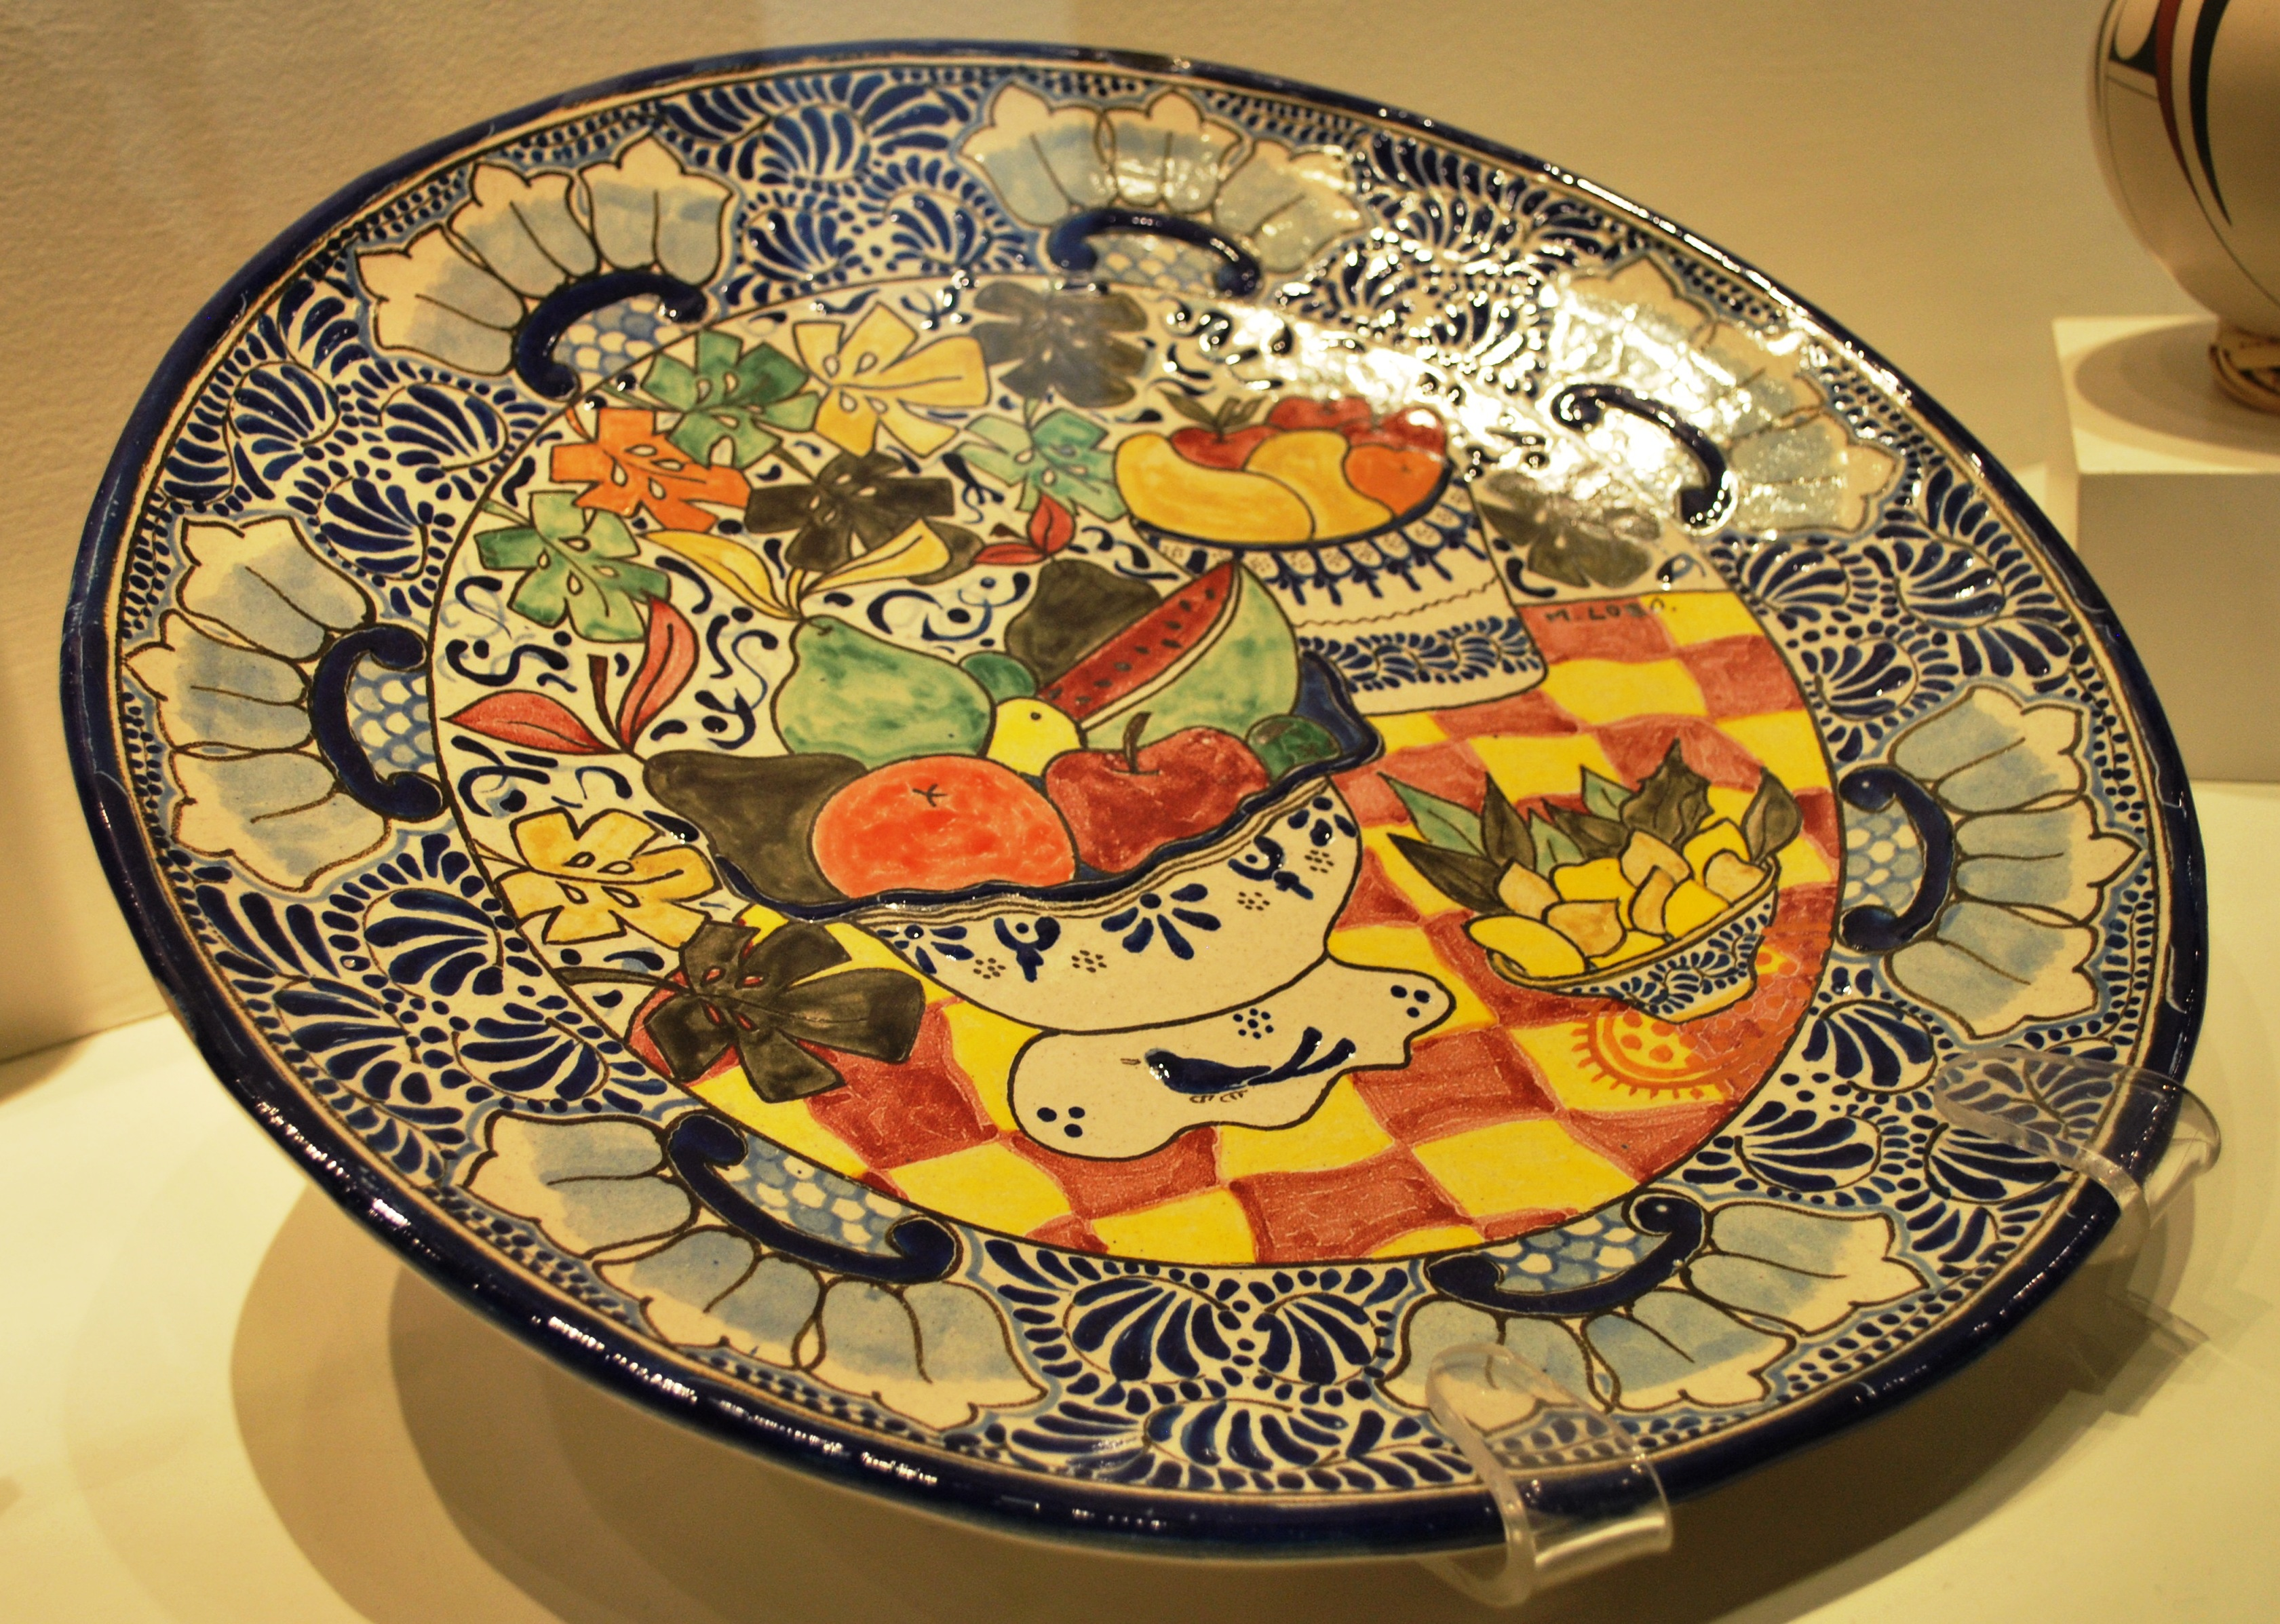 Talavera Pottery was introduced by Spanish Guild Artisan during the Colonial period in Mexico. Today it is known as Mexican Talavera Pottery. & Talavera Pottery | Artifact Collectors